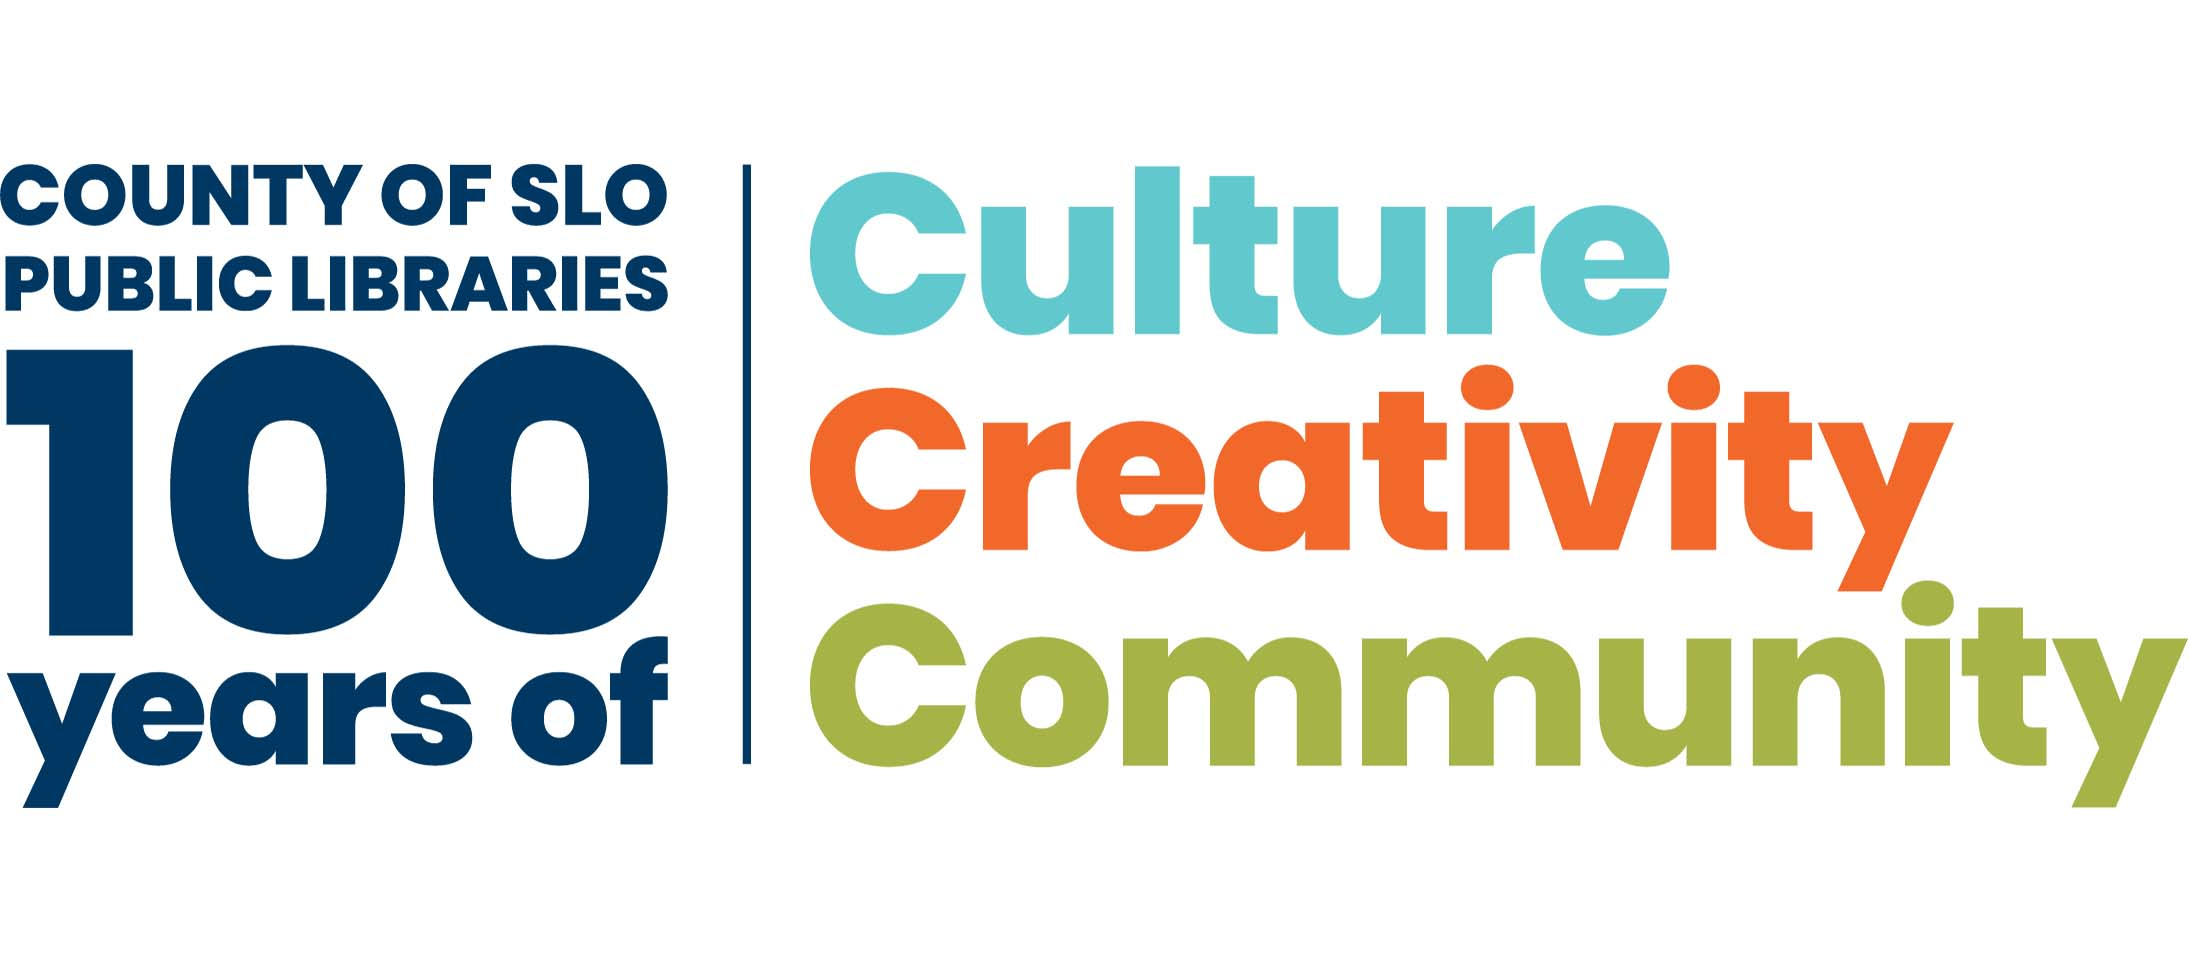 County of SLO Public Libraries: 100 years of culture, creativity, and community.